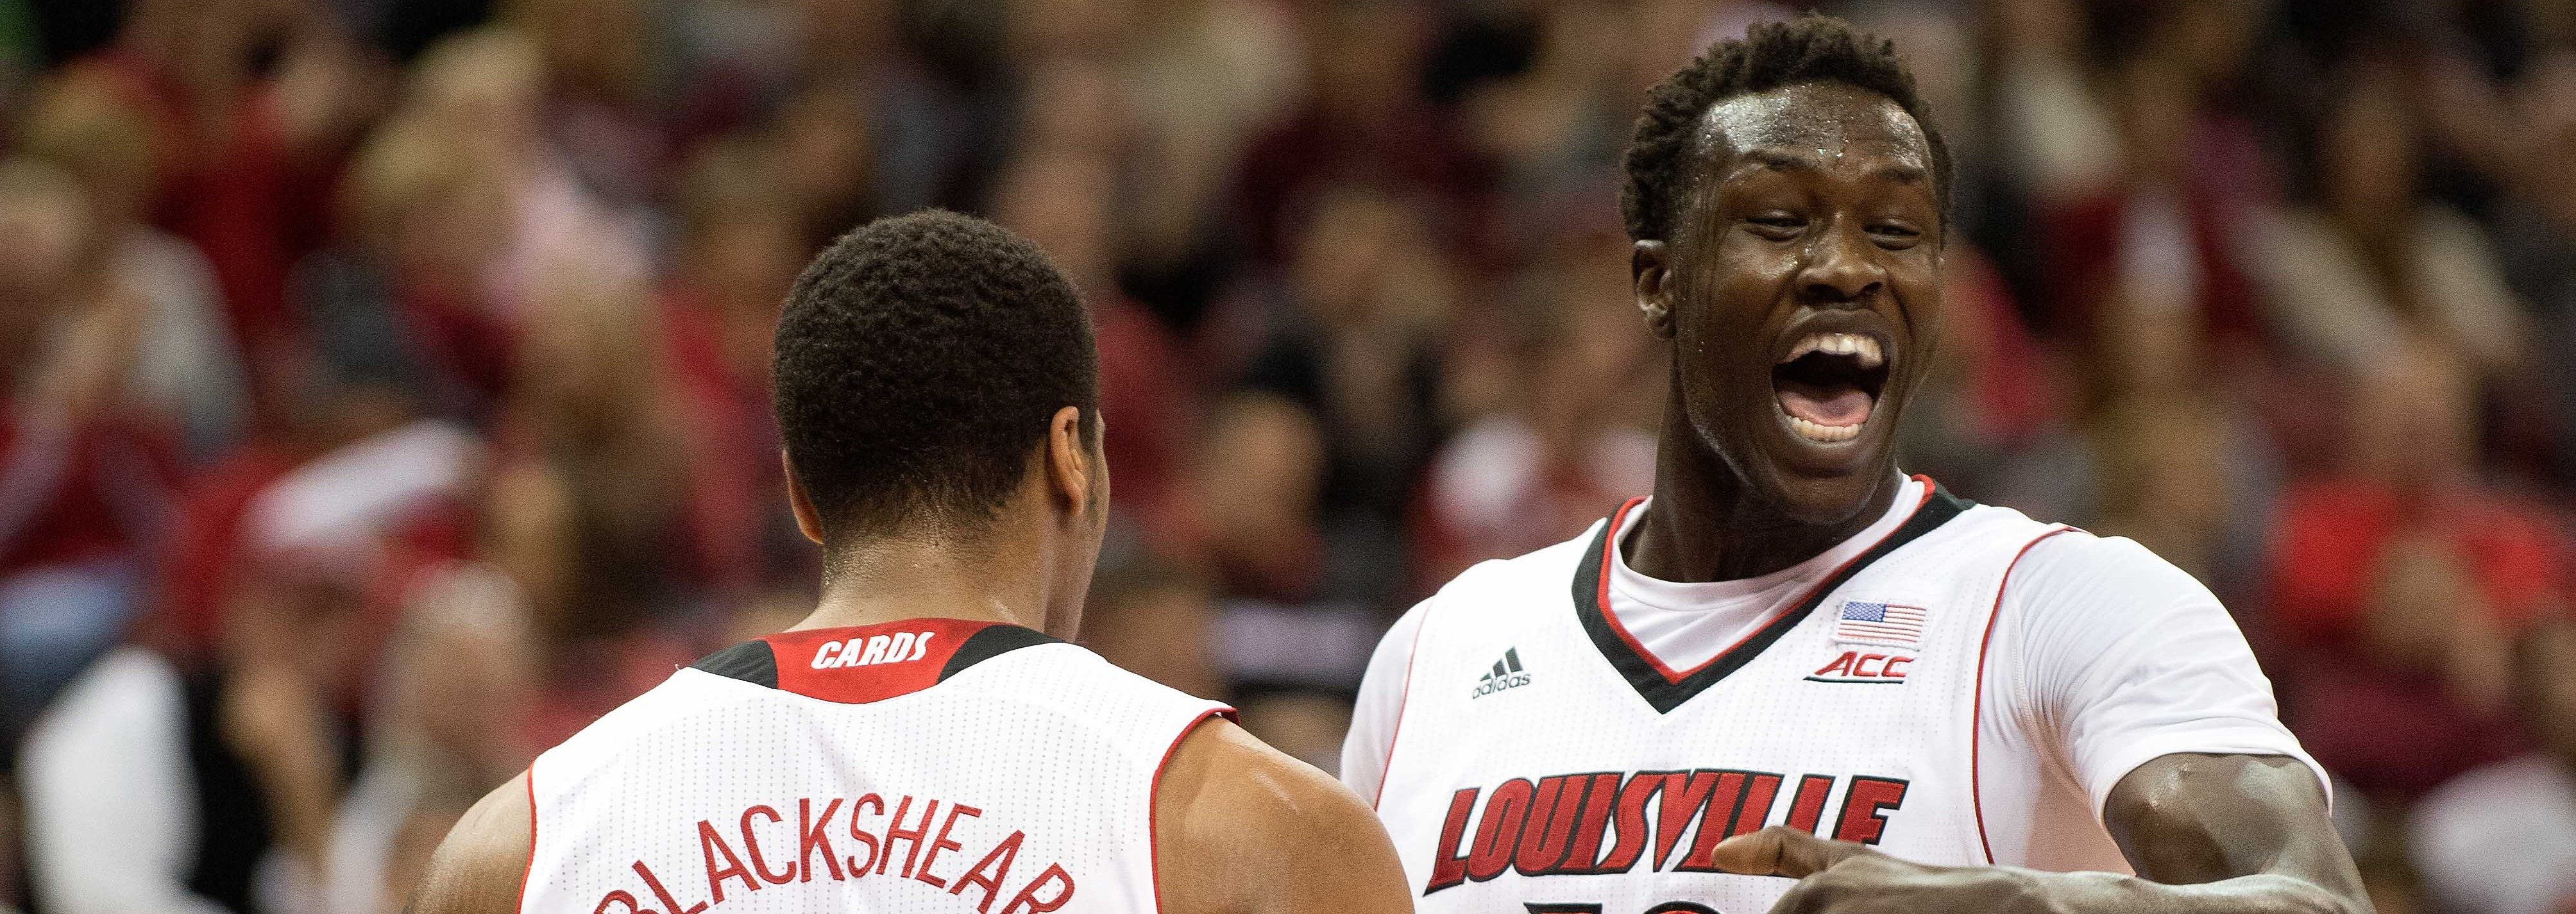 Mangok Mathiang & Wayne Blackshear Louisville vs. Bellarmine 11-9-2014 by Adam Creech